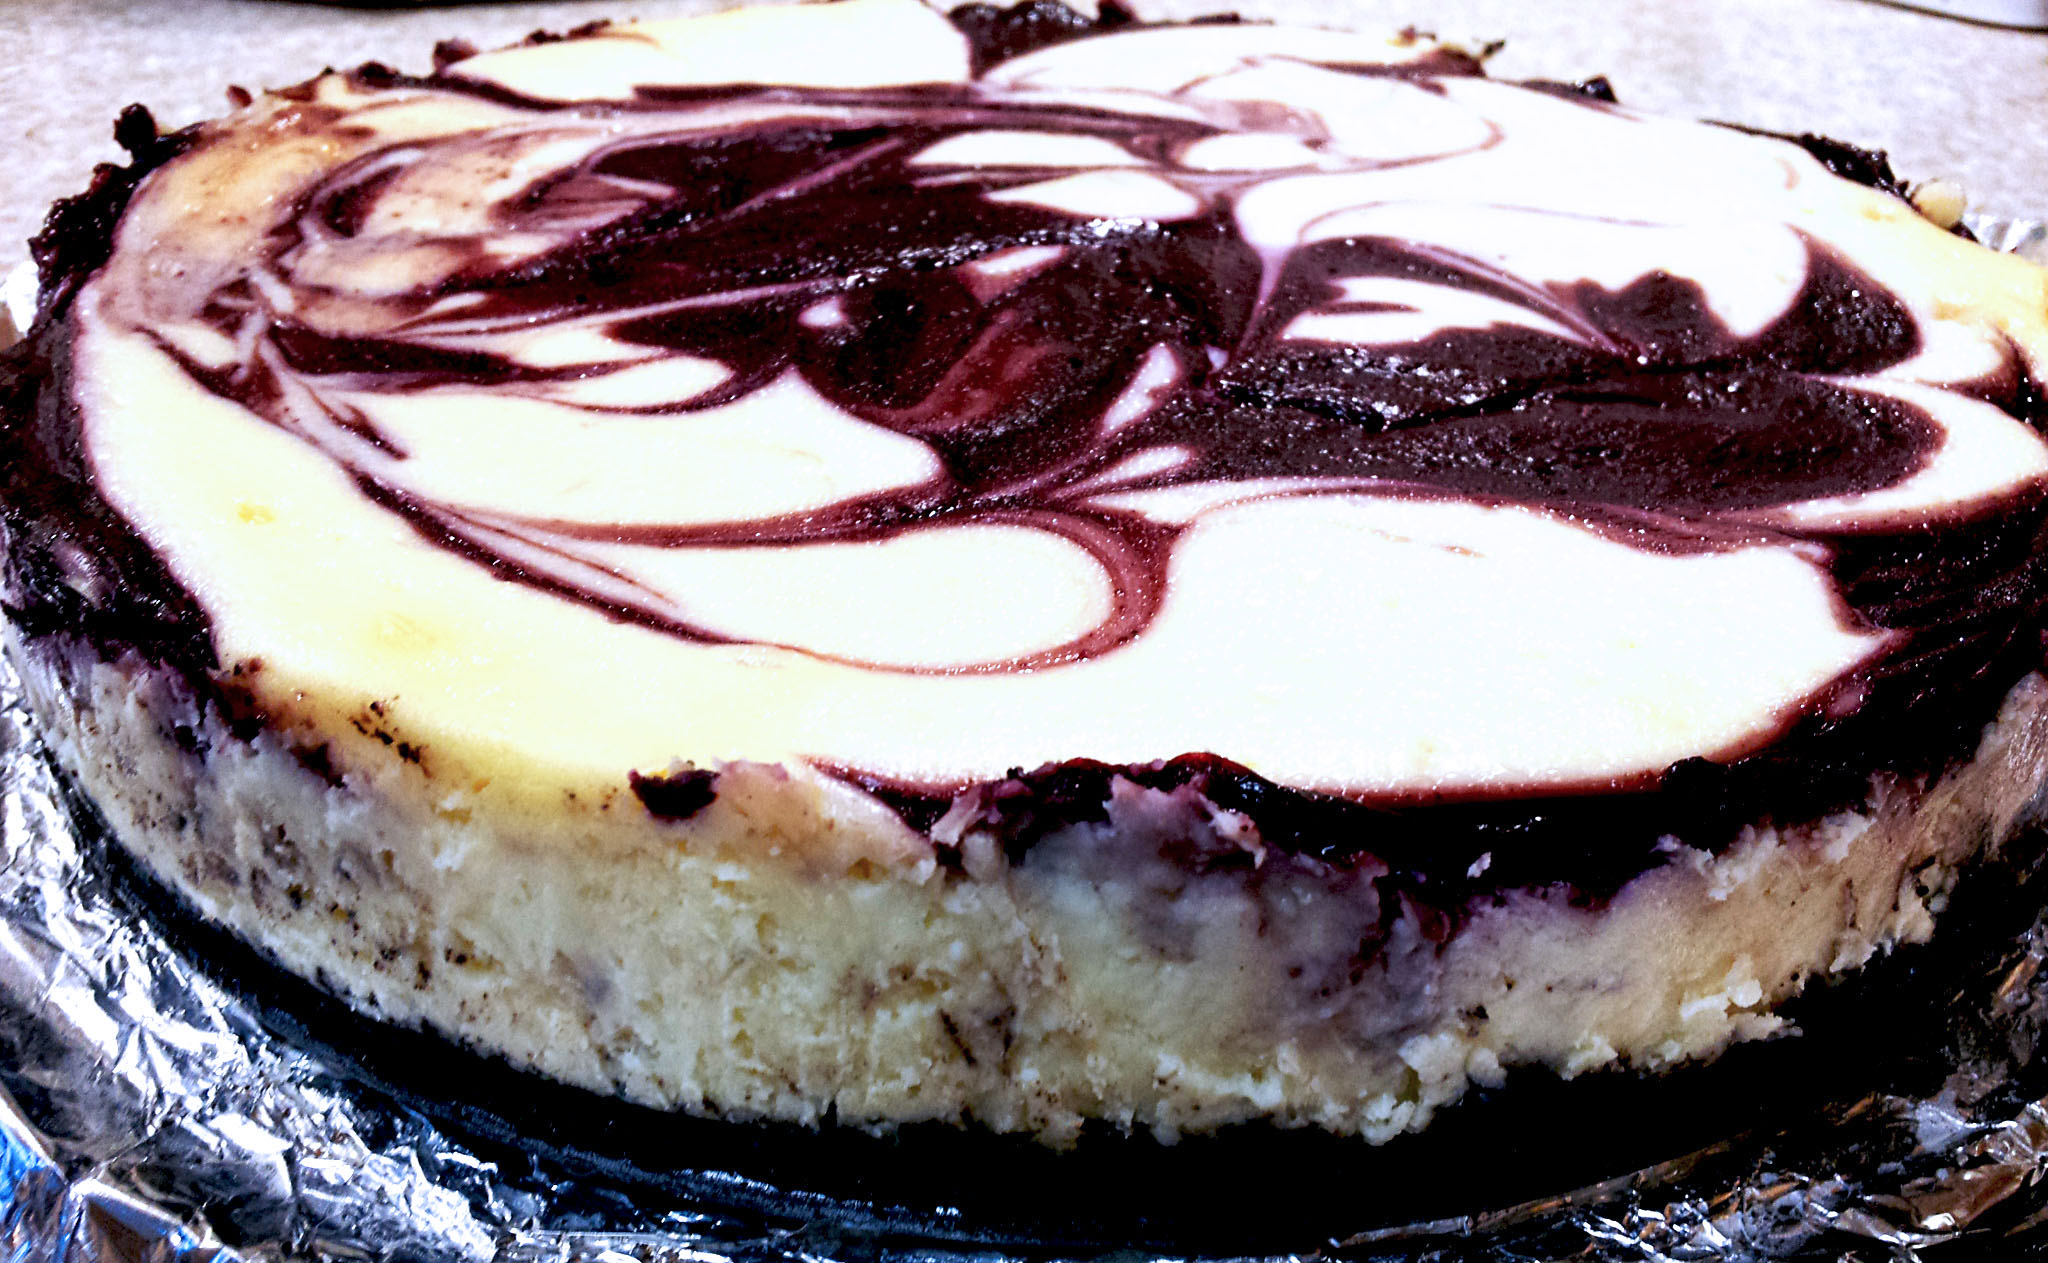 White Chocolate Raspberry Cheesecake with Oreo crust bake